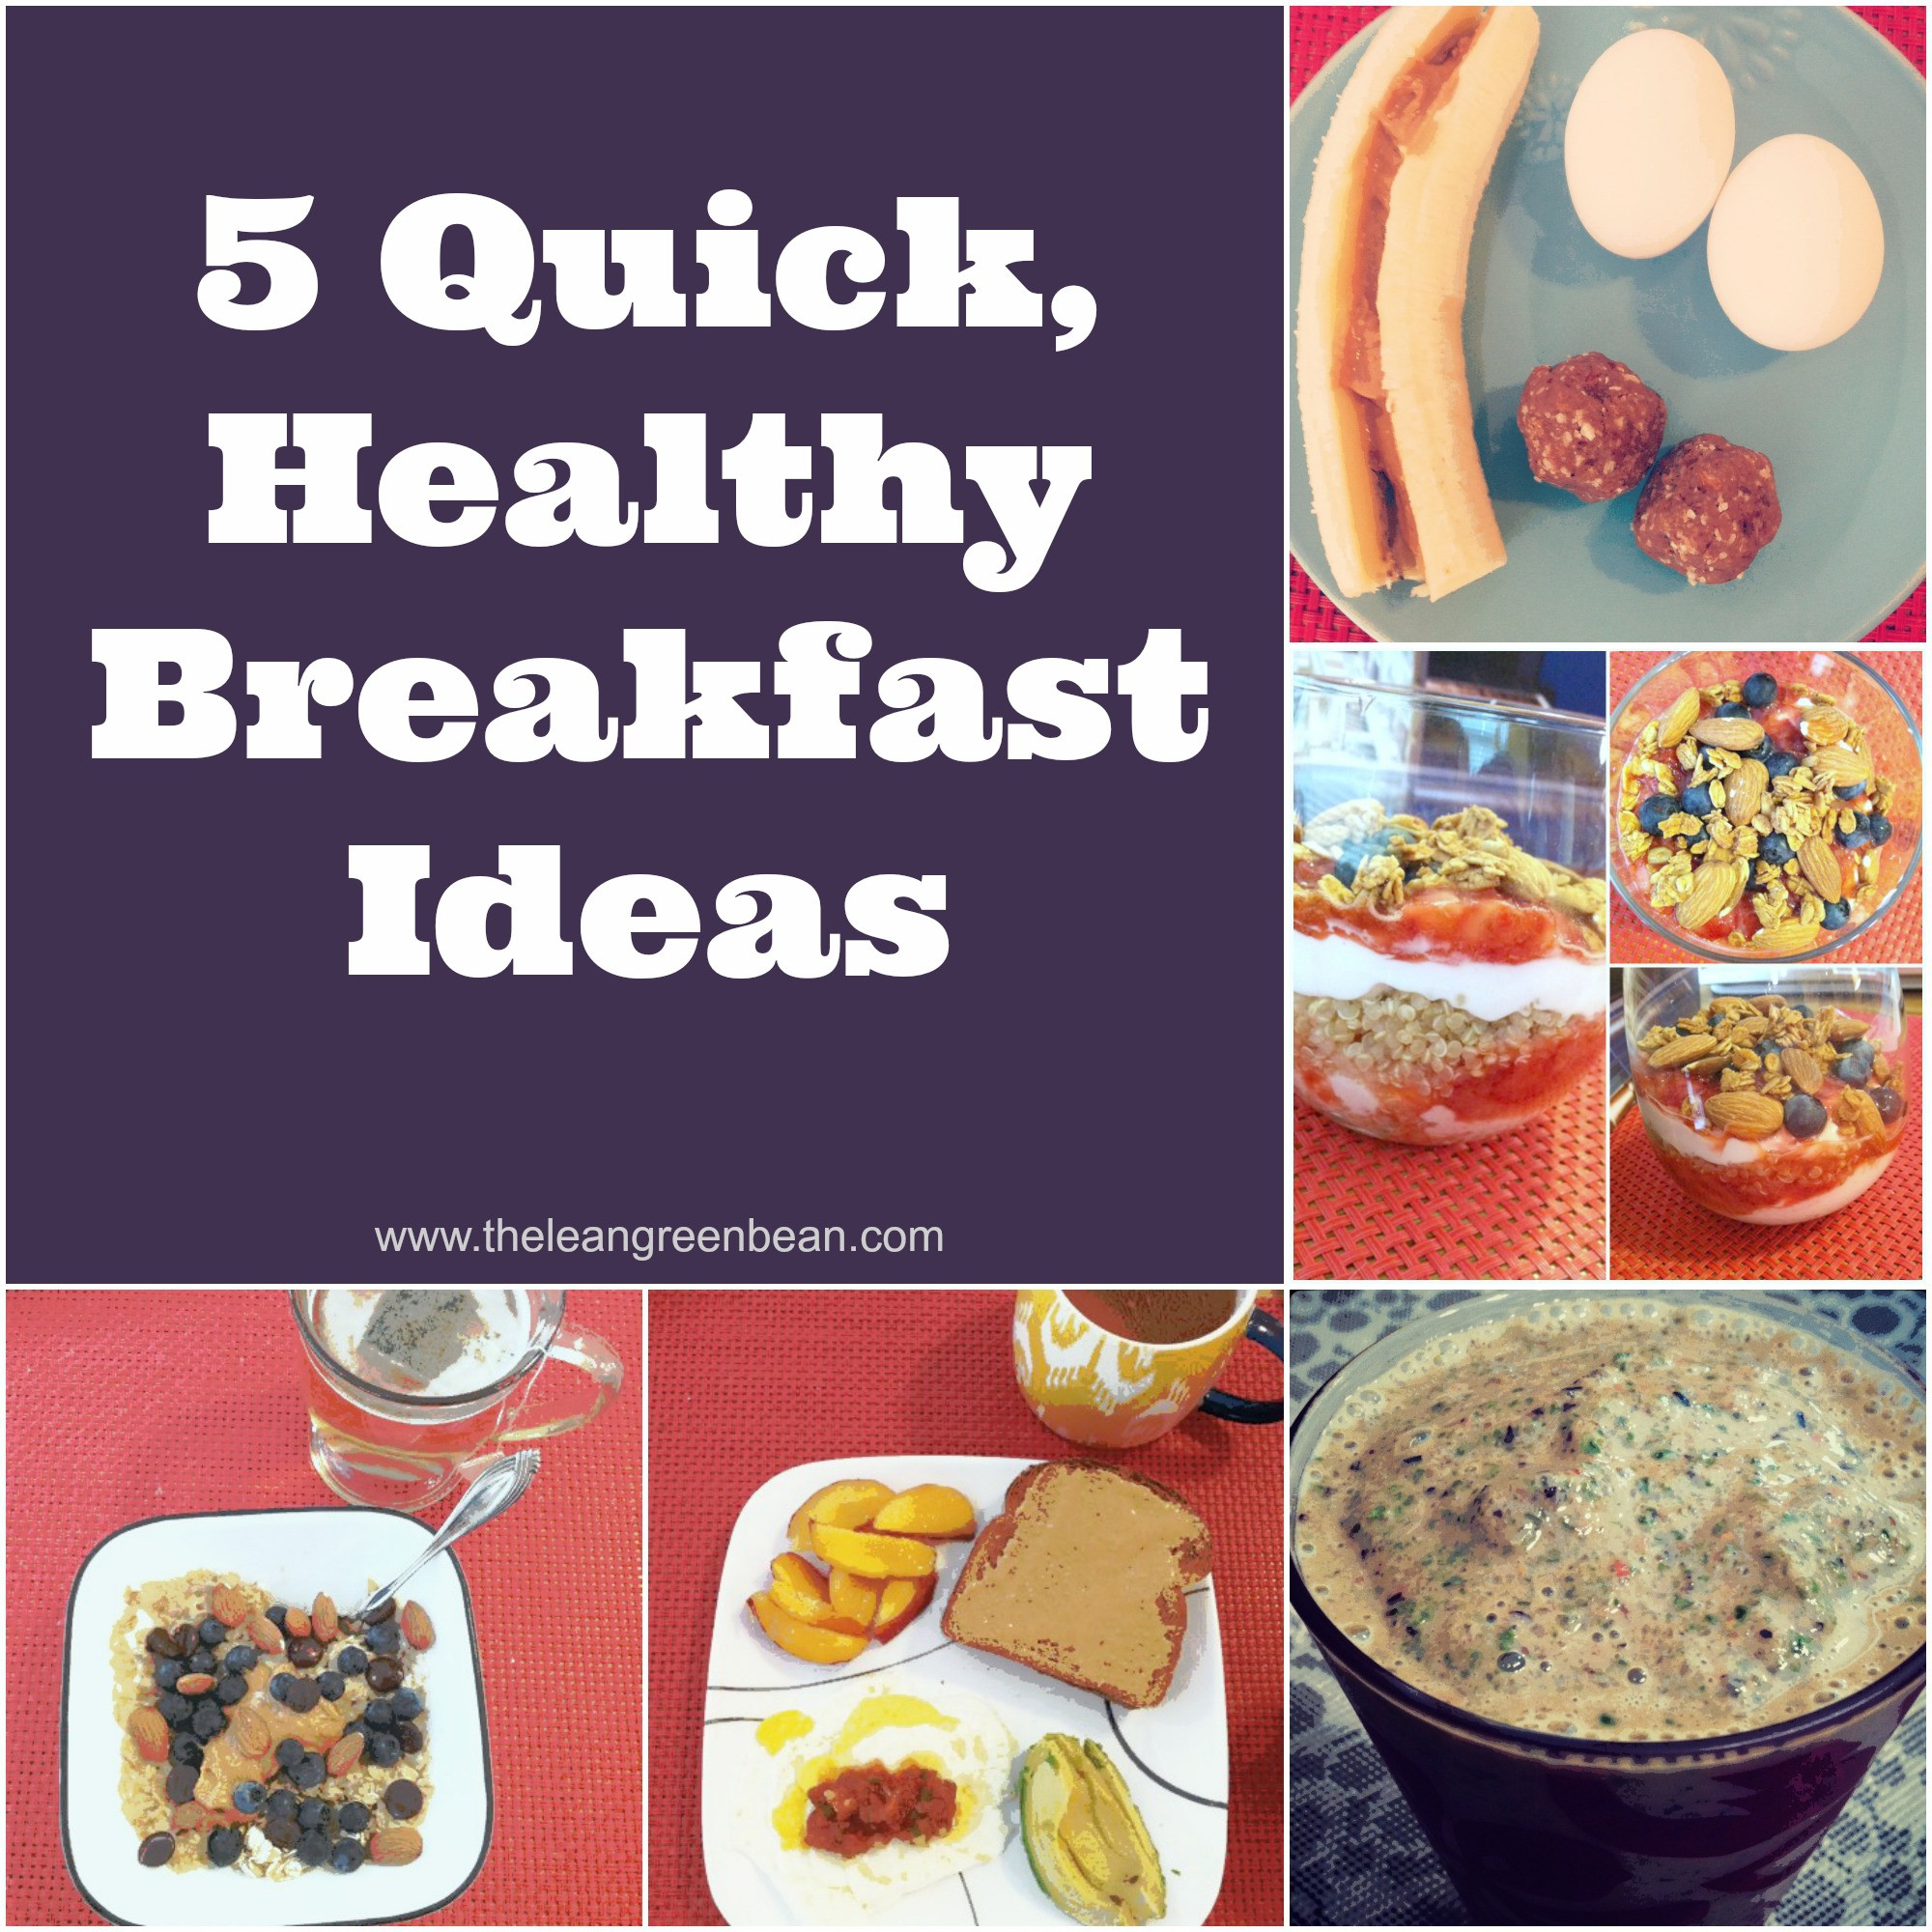 Quick Healthy Breakfast Options  5 Quick Healthy Breakfast Ideas from a Registered Dietitian